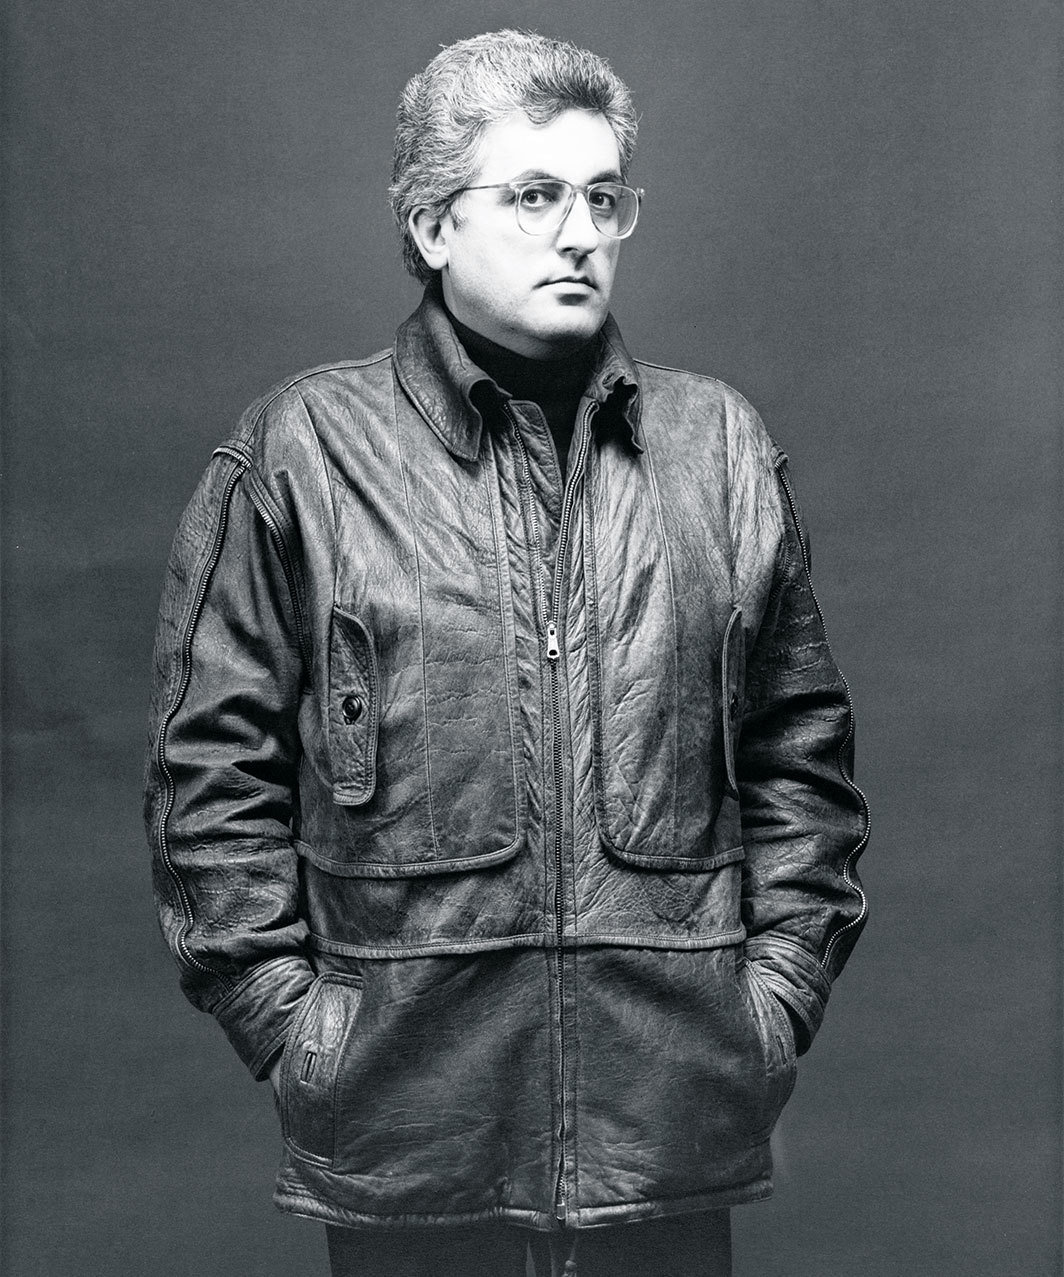 Germano Celant, 1984. Photo: Robert Mapplethorpe.